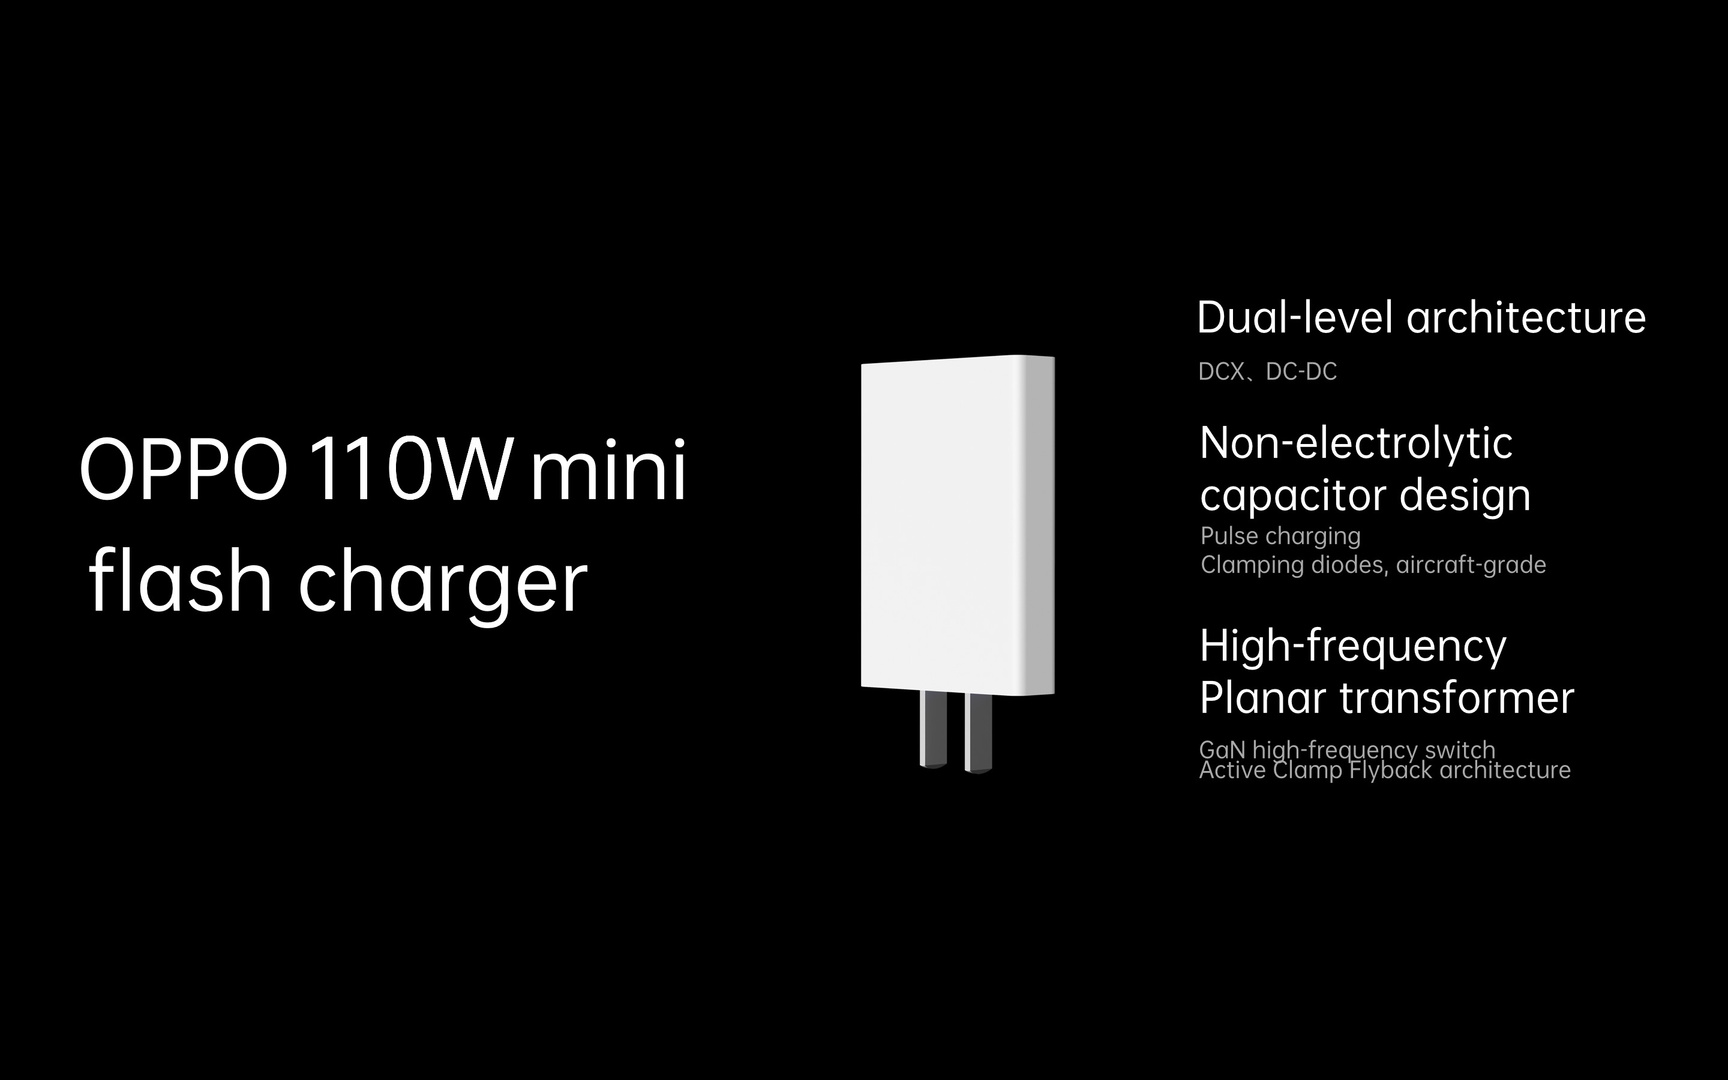 Oppo 110W min Flash Charger